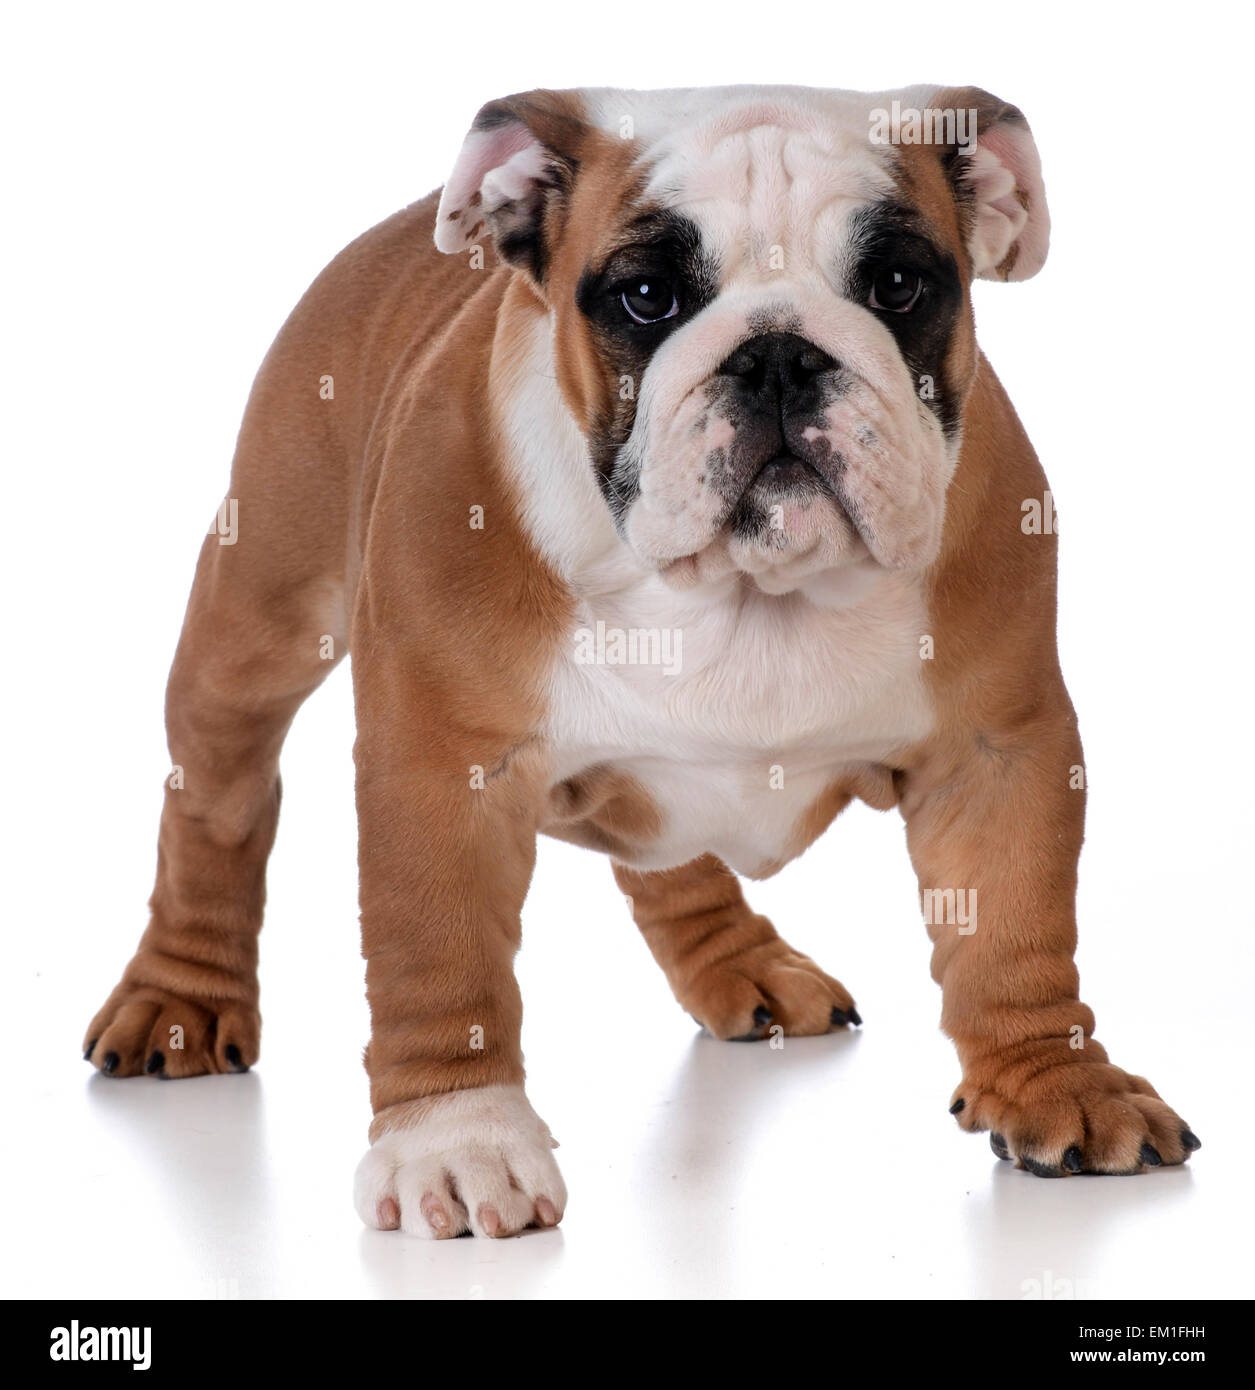 bulldog puppy standing looking at viewer on white background - Stock Image